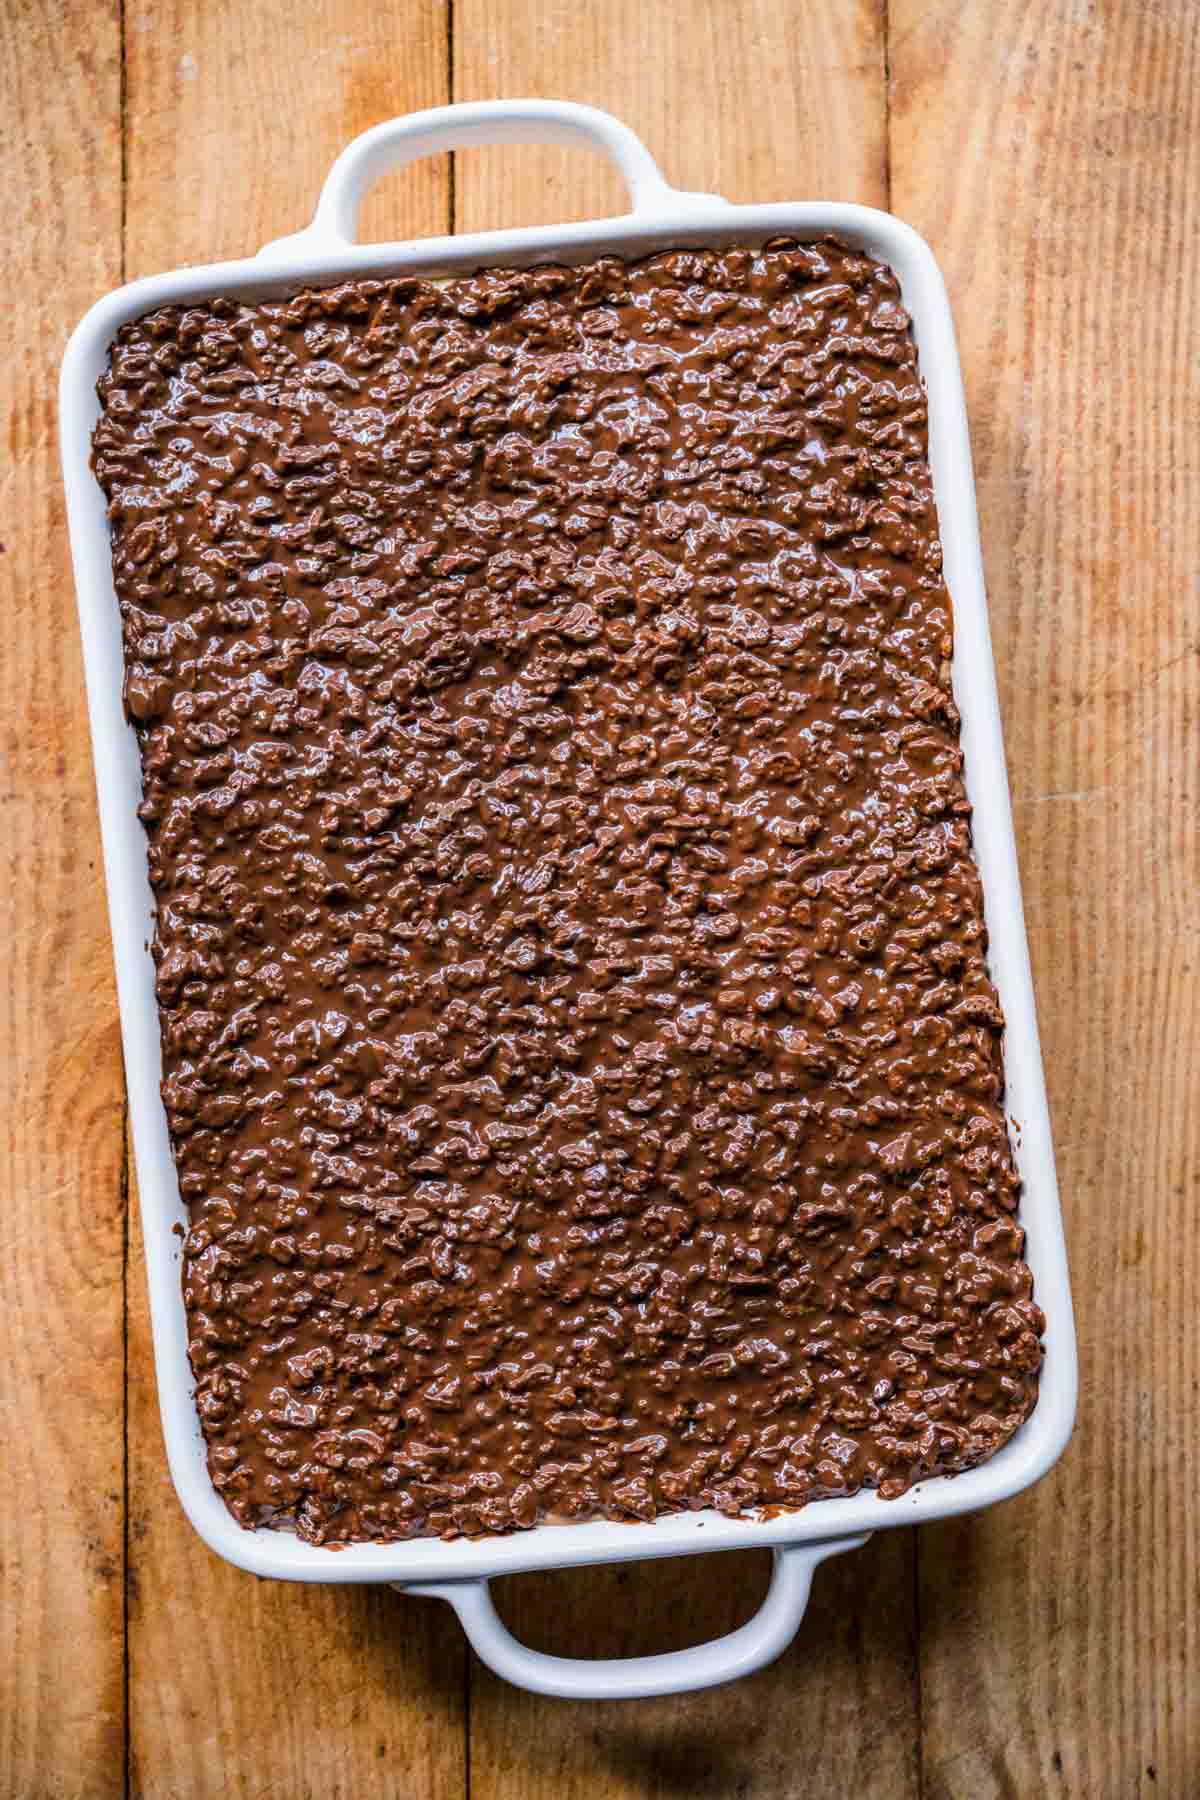 Finished Crispy Chocolate Peanut Butter Brownie Bars in baking dish